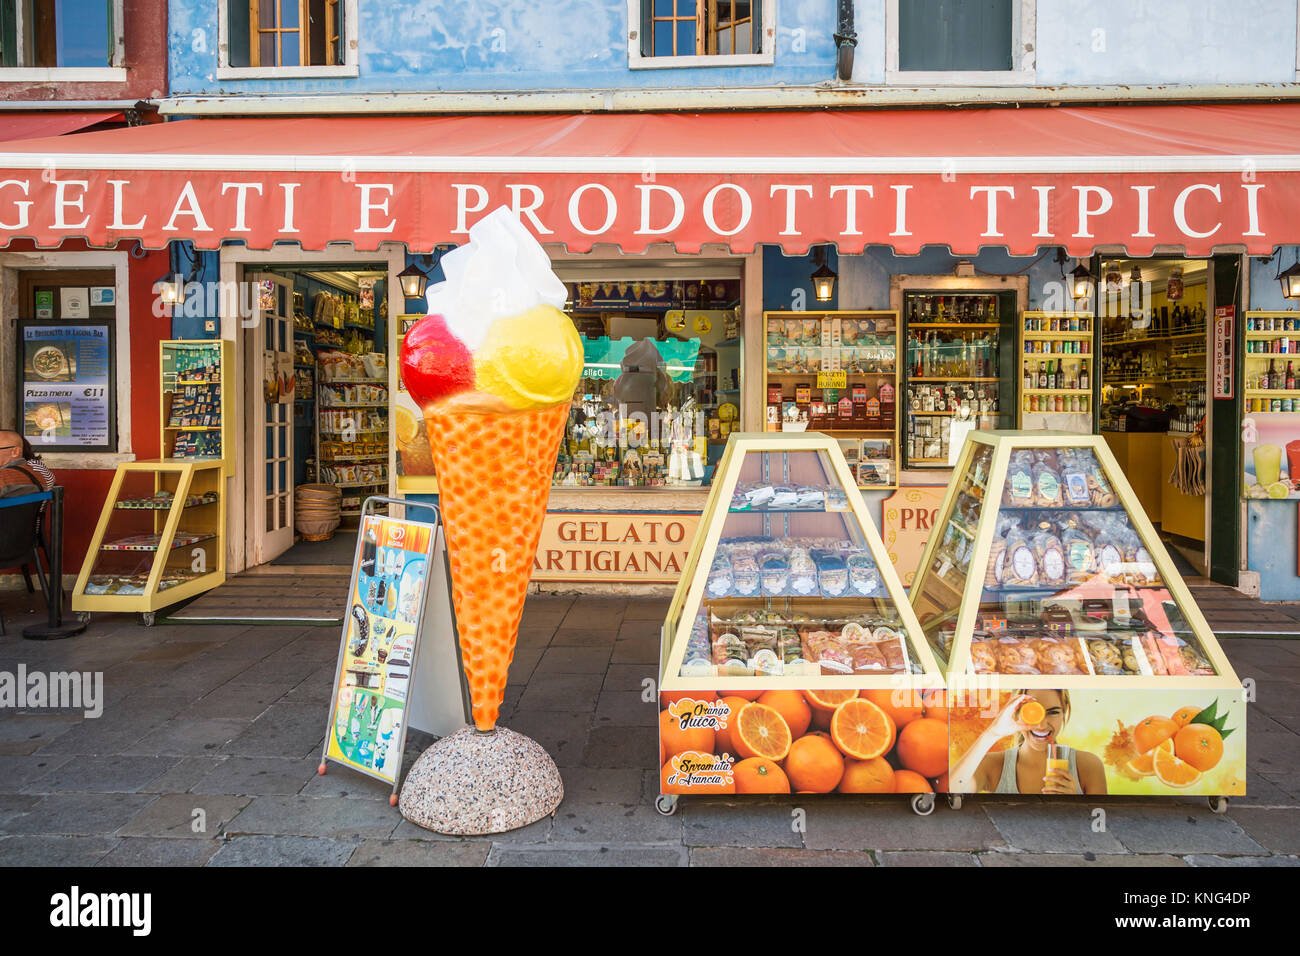 A Gelati shop in the Venetian vlllage of Burano, Venice, Italy, Europe. - Stock Image